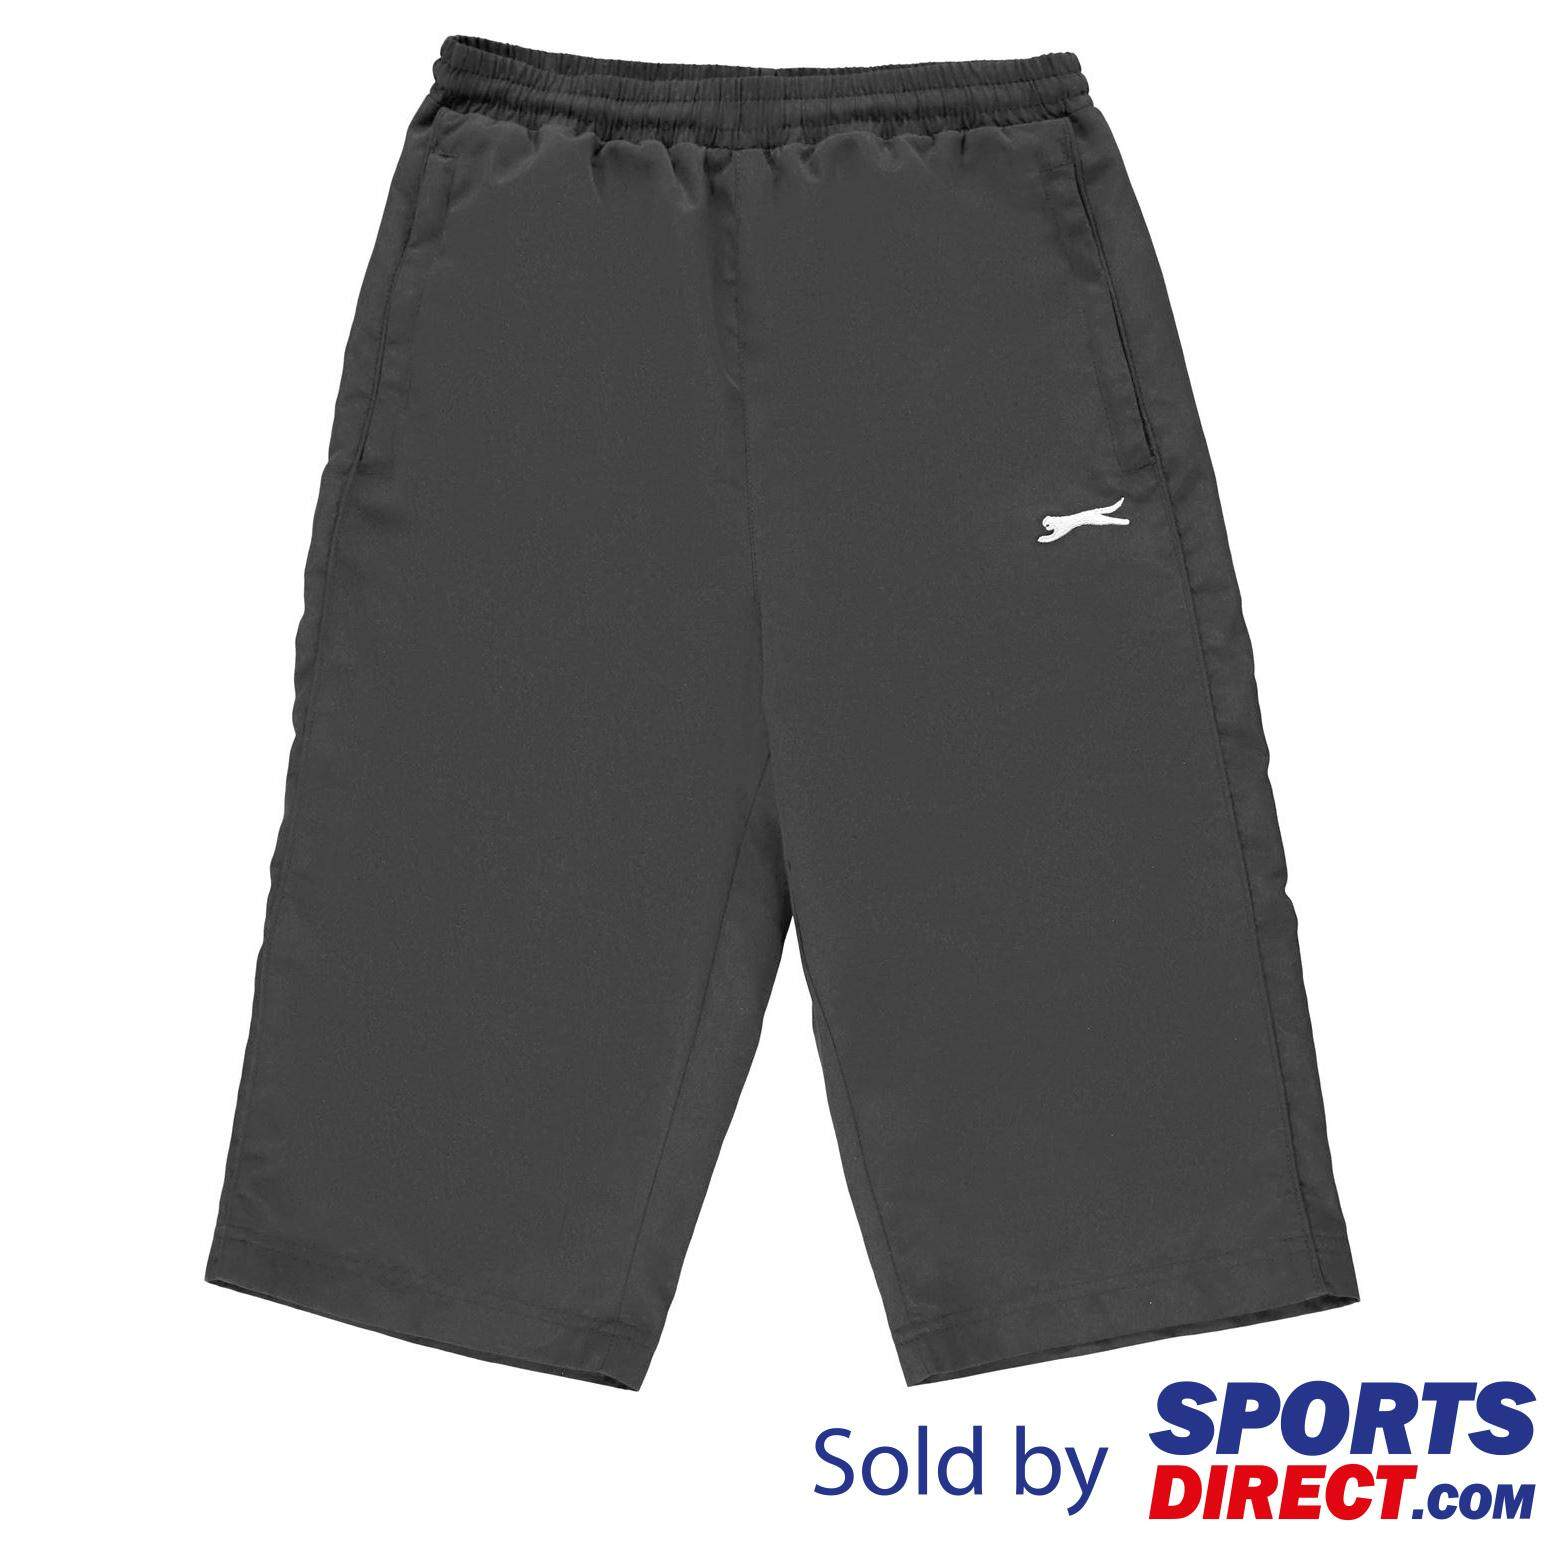 Slazenger Kids Boys Three Quarter Track Pants (charcoal) By Sports Direct Mst Sdn Bhd.